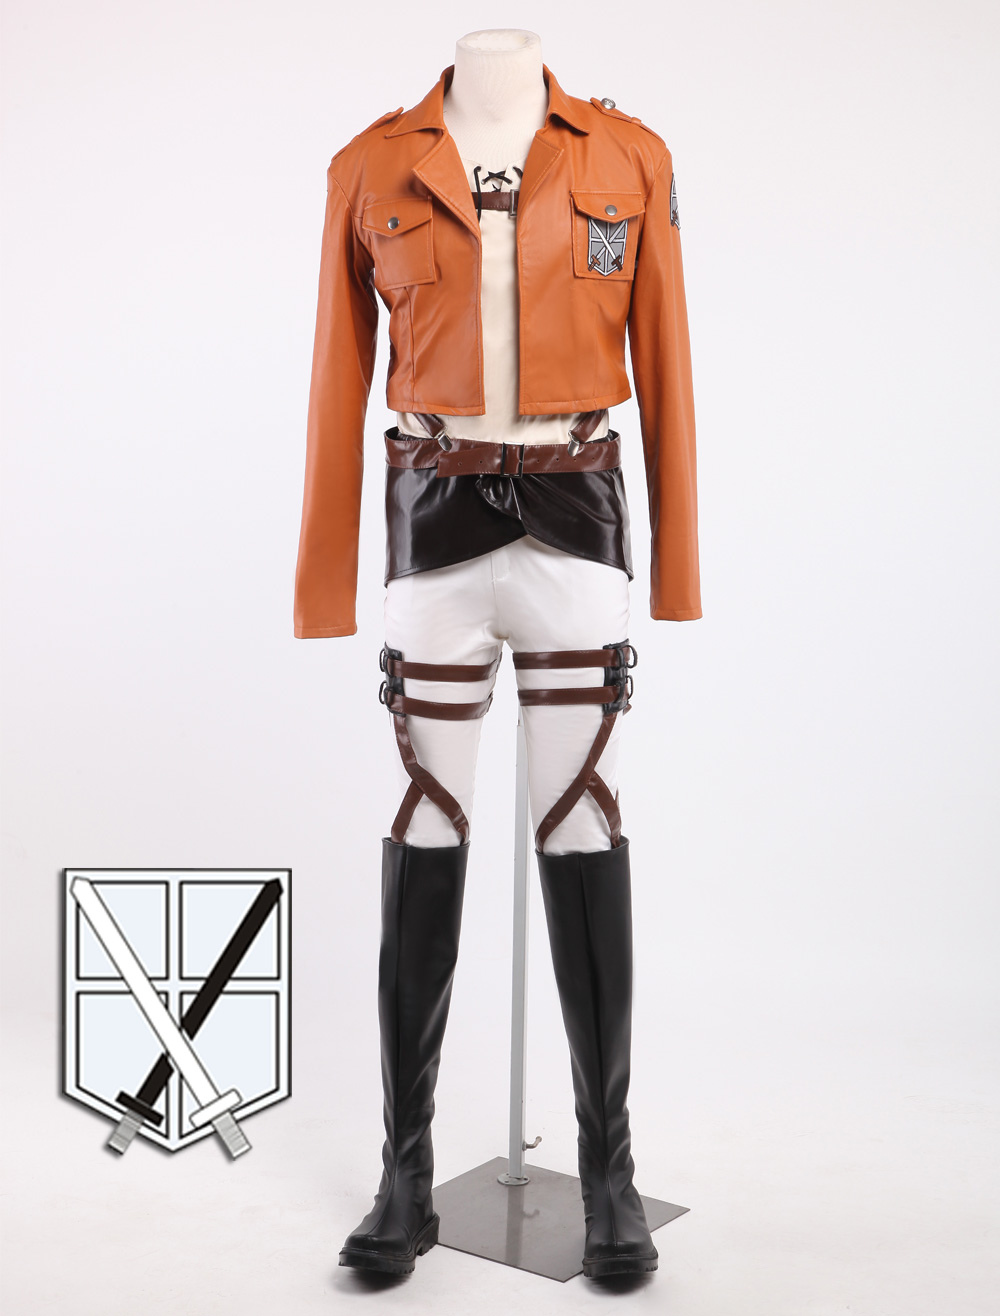 Buy Attack On Titan Eren Jaeger Cosplay Costume Shingeki No Kyojin Halloween Trainning Corps Cosplay Costume Without Boots Halloween for $192.99 in Milanoo store